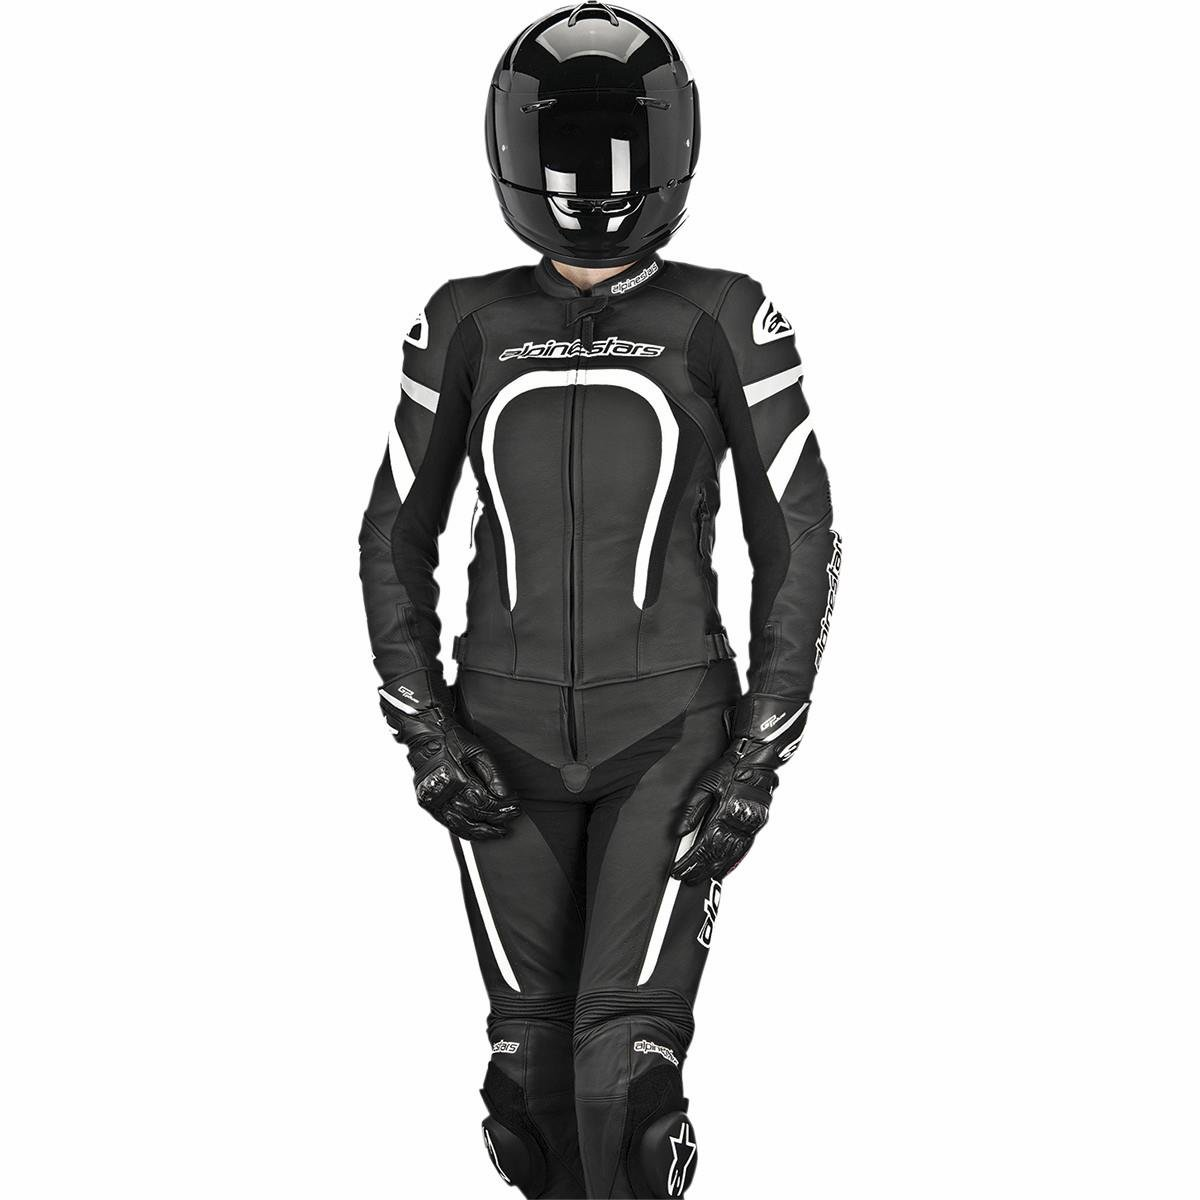 Alpinestars Motegi Women's 2-Piece Street Motorcycle Race Suits - Black/White / 38